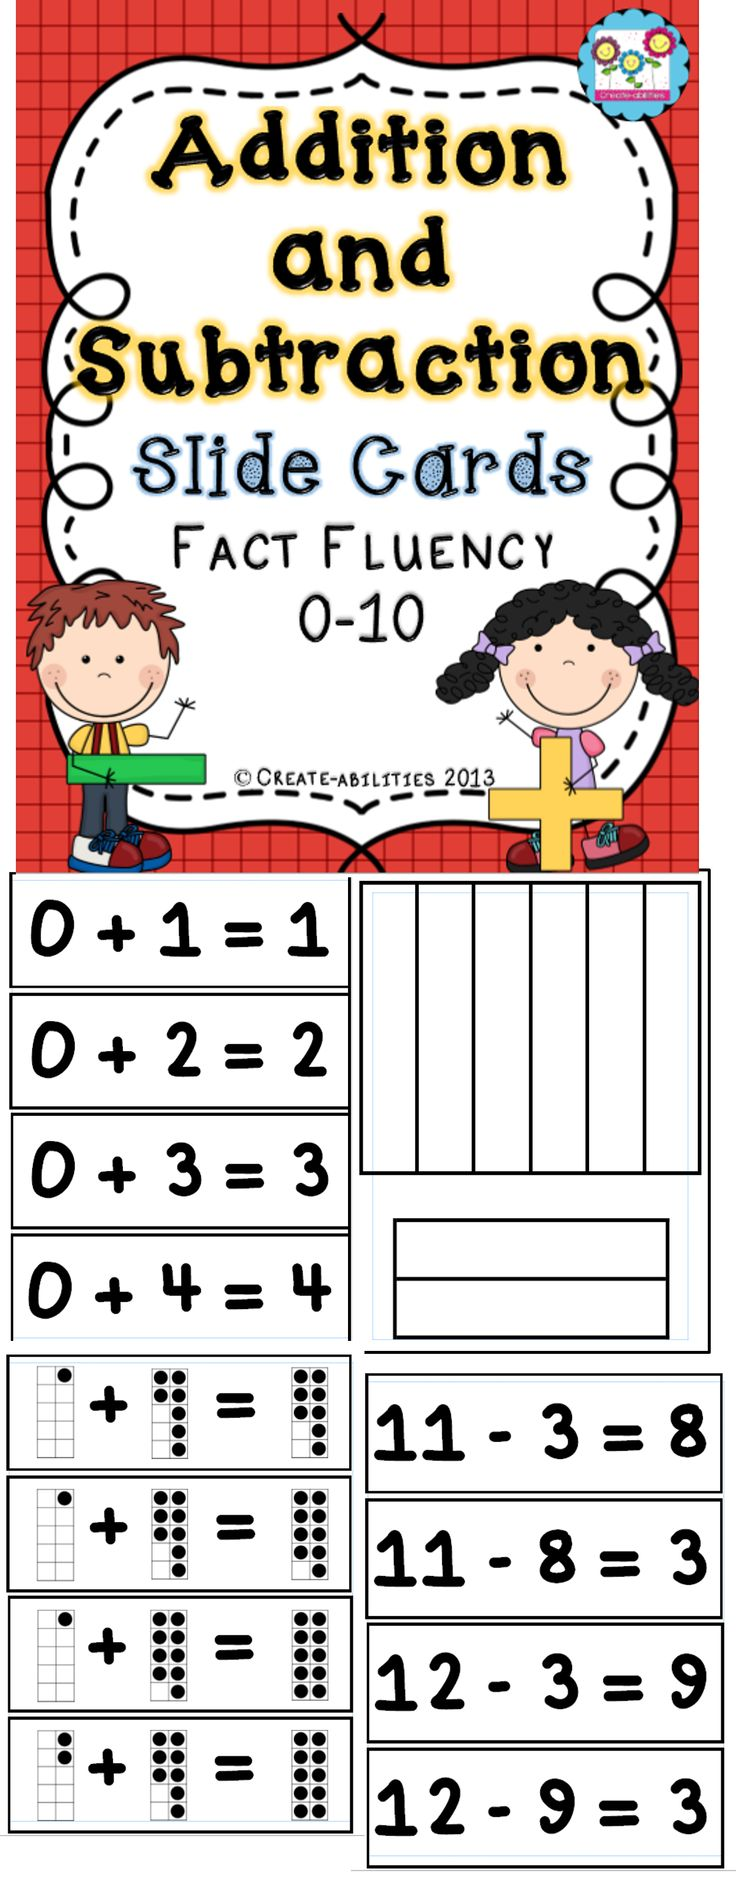 Addition addition zero clipart picture download Addition clipart fact fluency - 151 transparent clip arts, images ... picture download